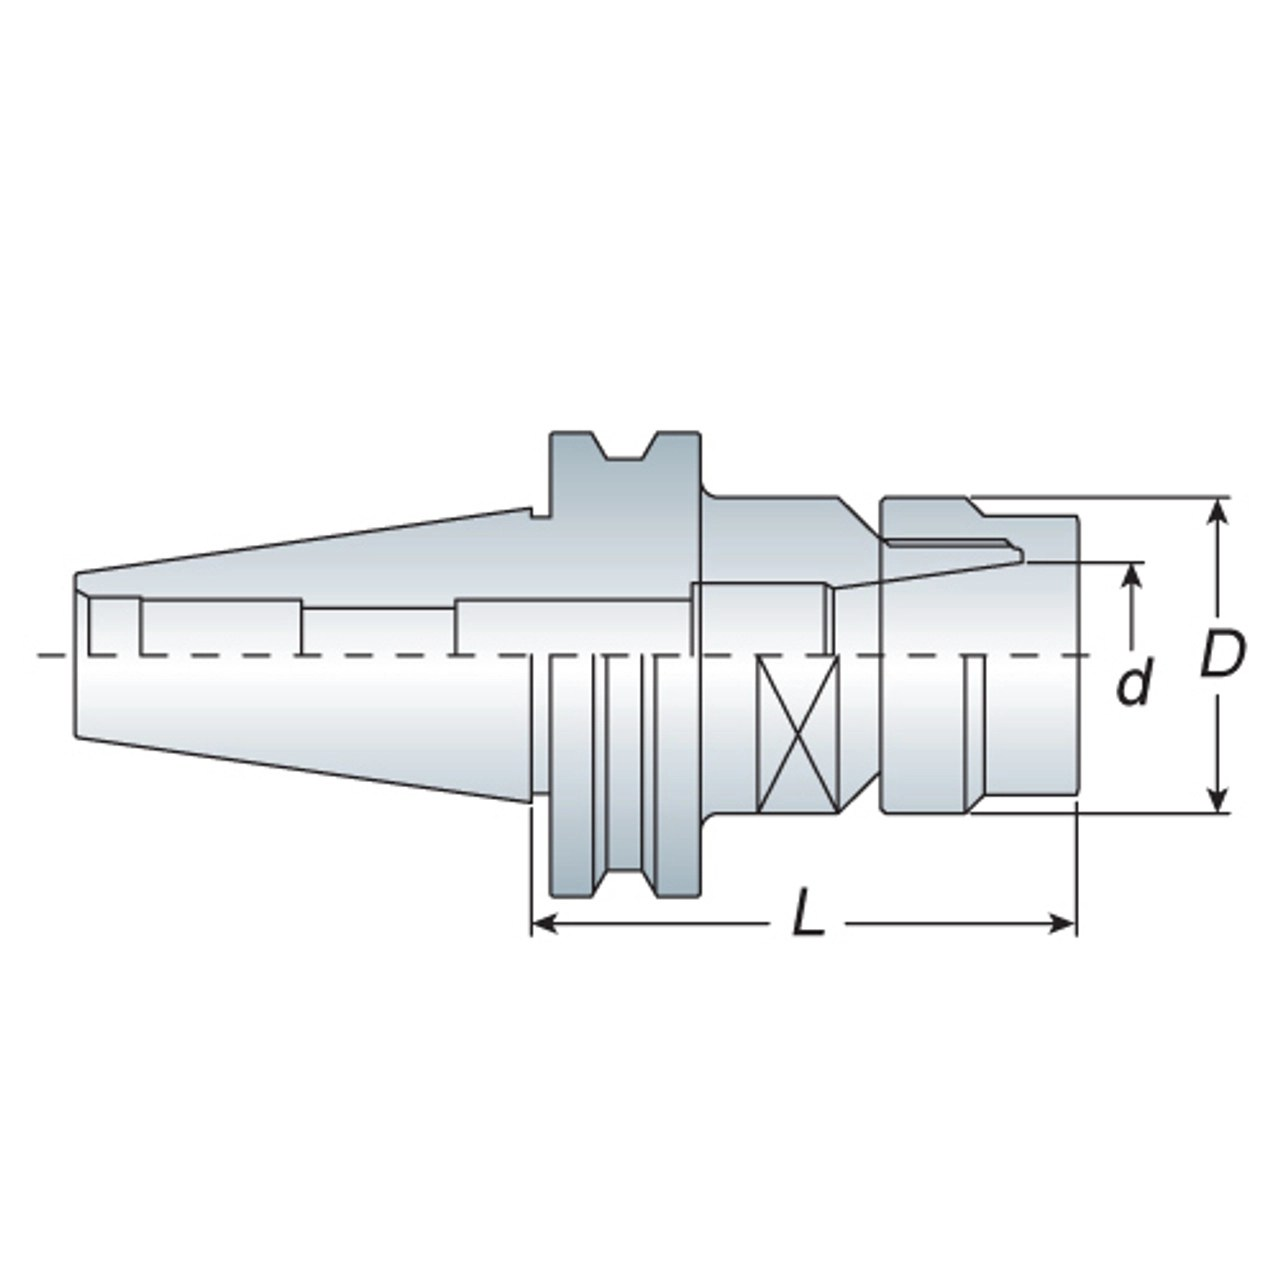 small resolution of metaltech tools tool holder spring collet chuck er25 iso30 60 mm